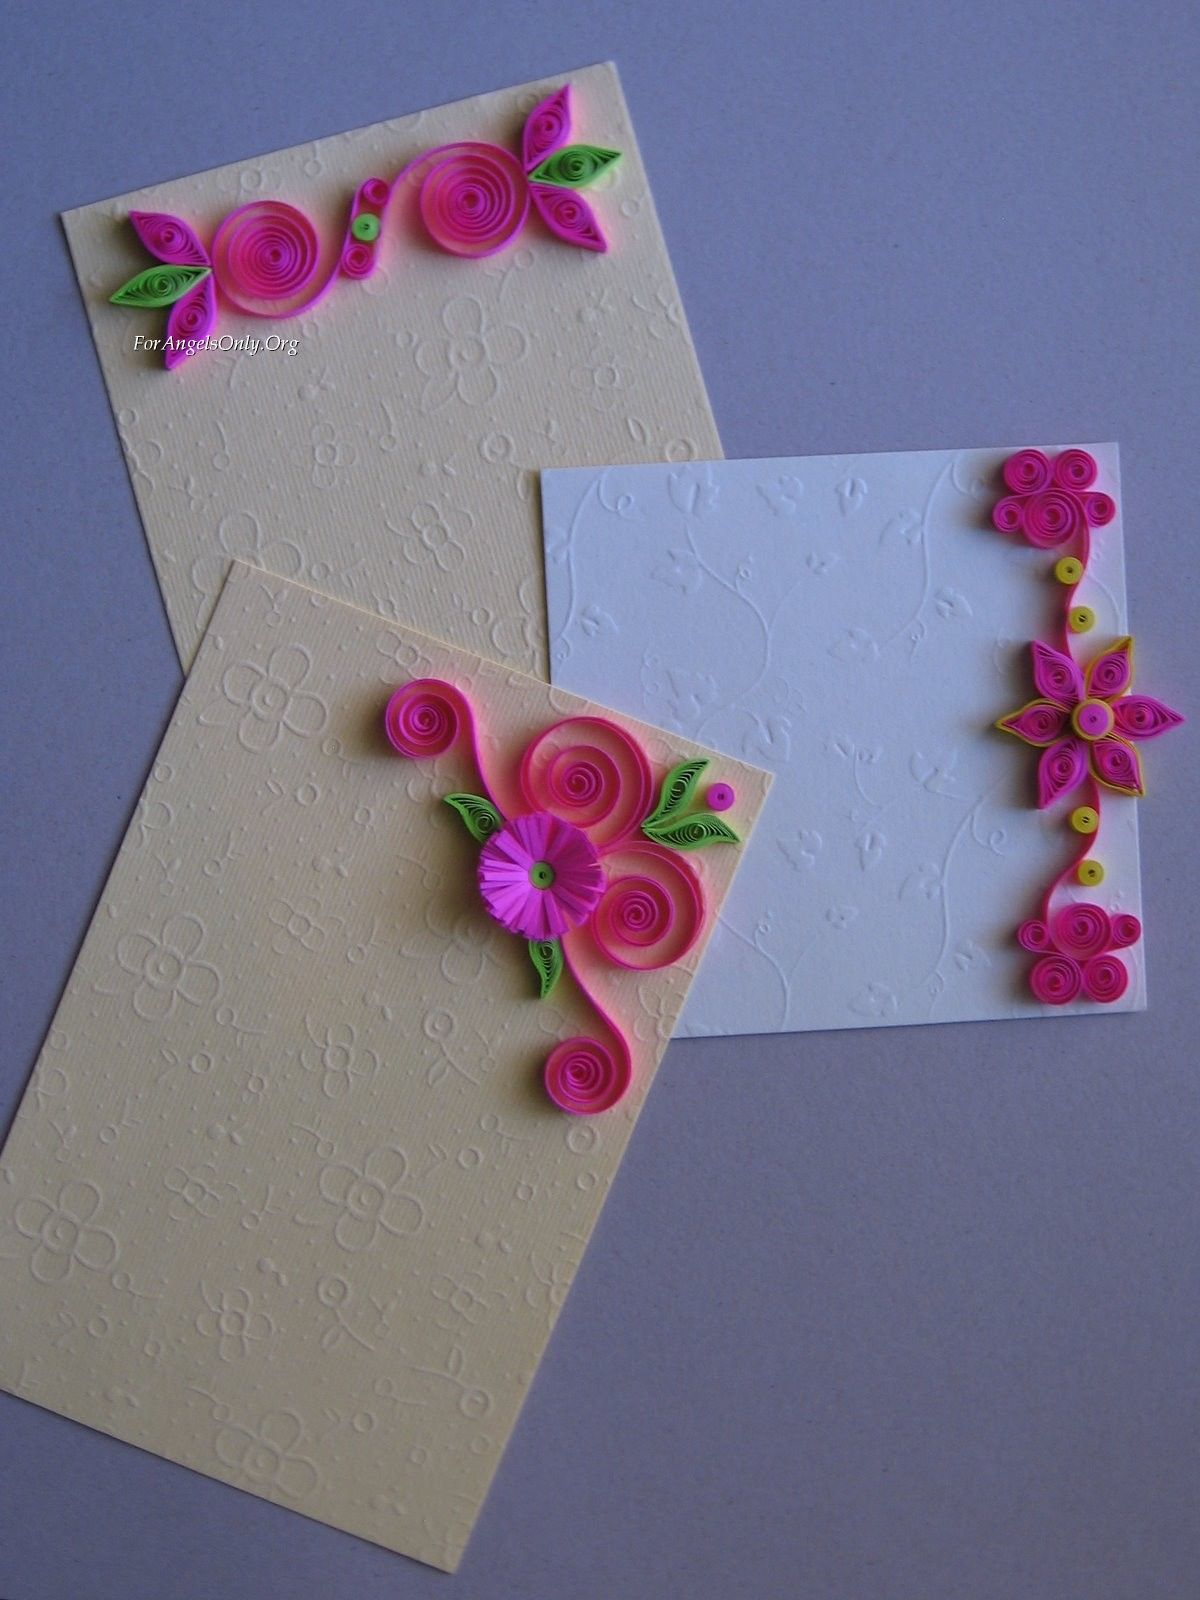 Quilling Design … | Cards | Pinterest | Quilling designs, Quilling ... for Simple Quilling Designs For Envelopes  59dqh